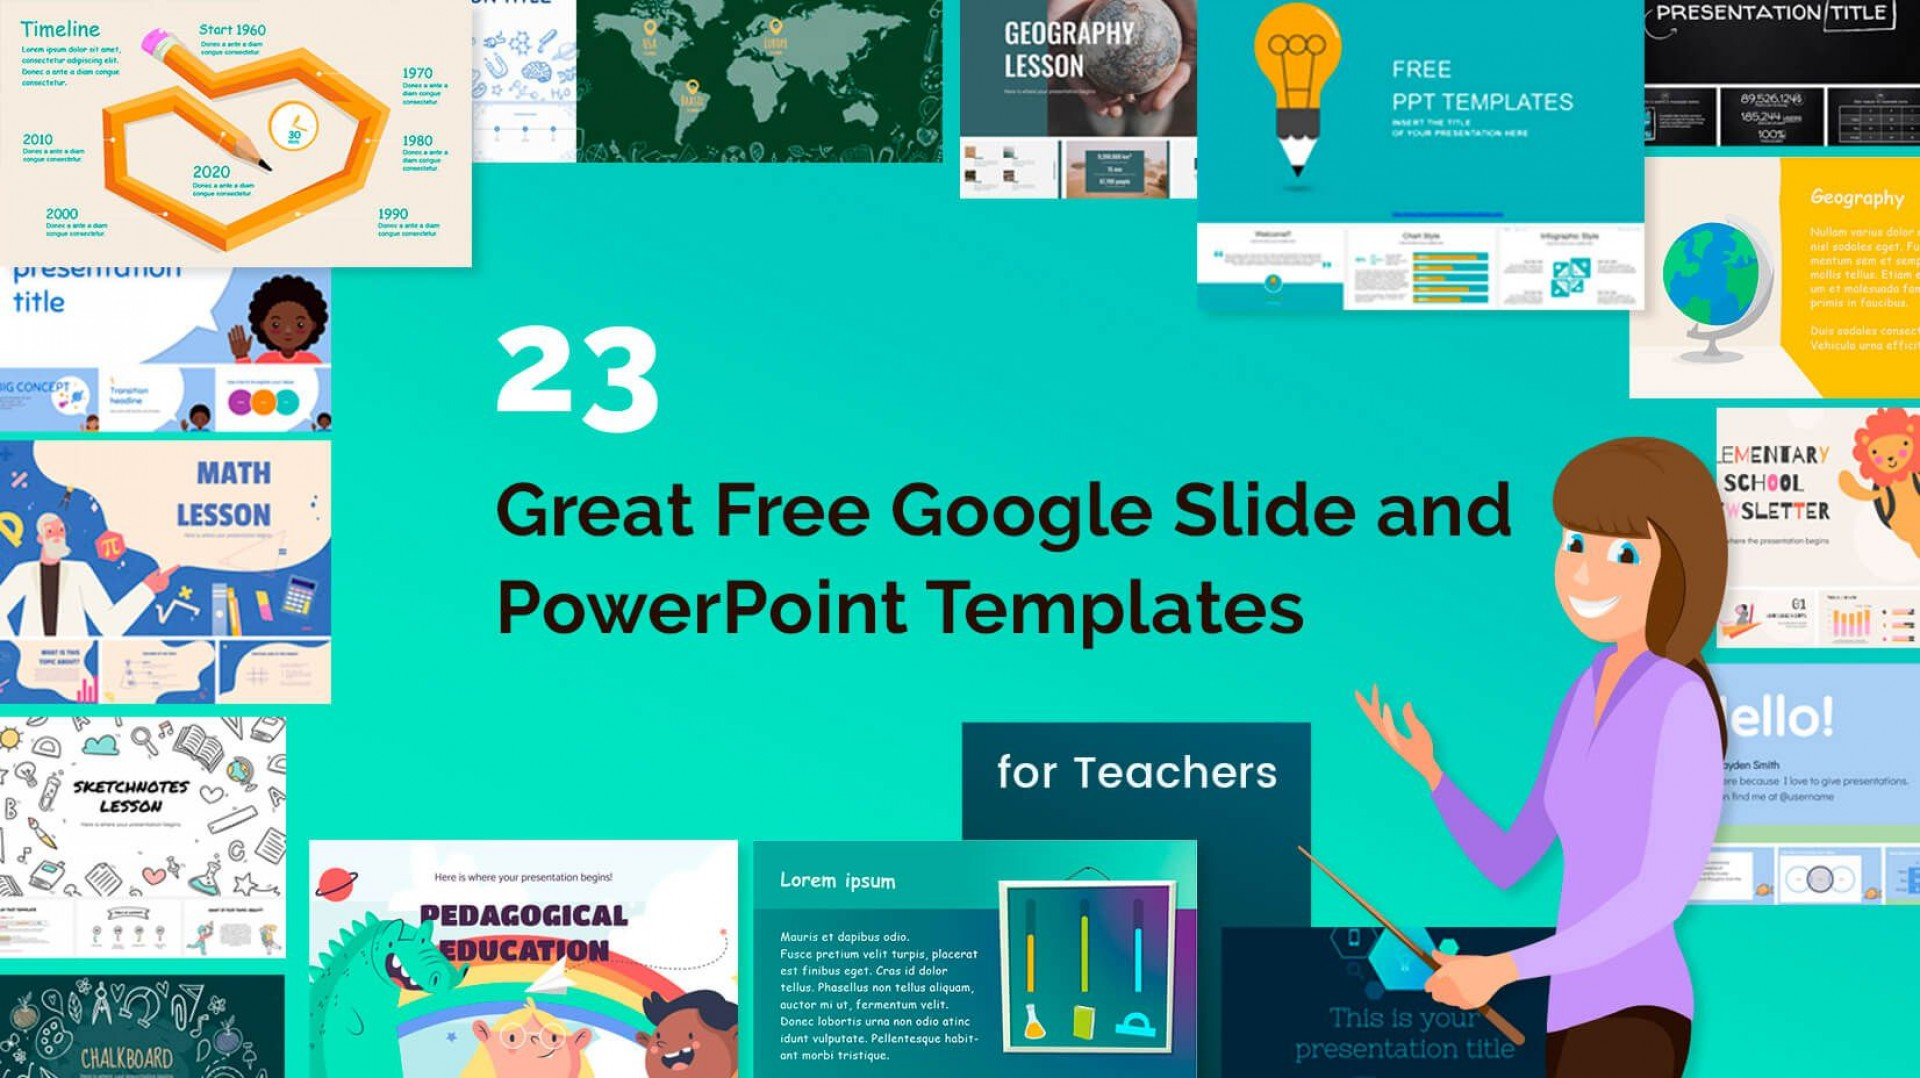 004 Striking Project Management Powerpoint Template Free Download Image  Sqert Dashboard1920